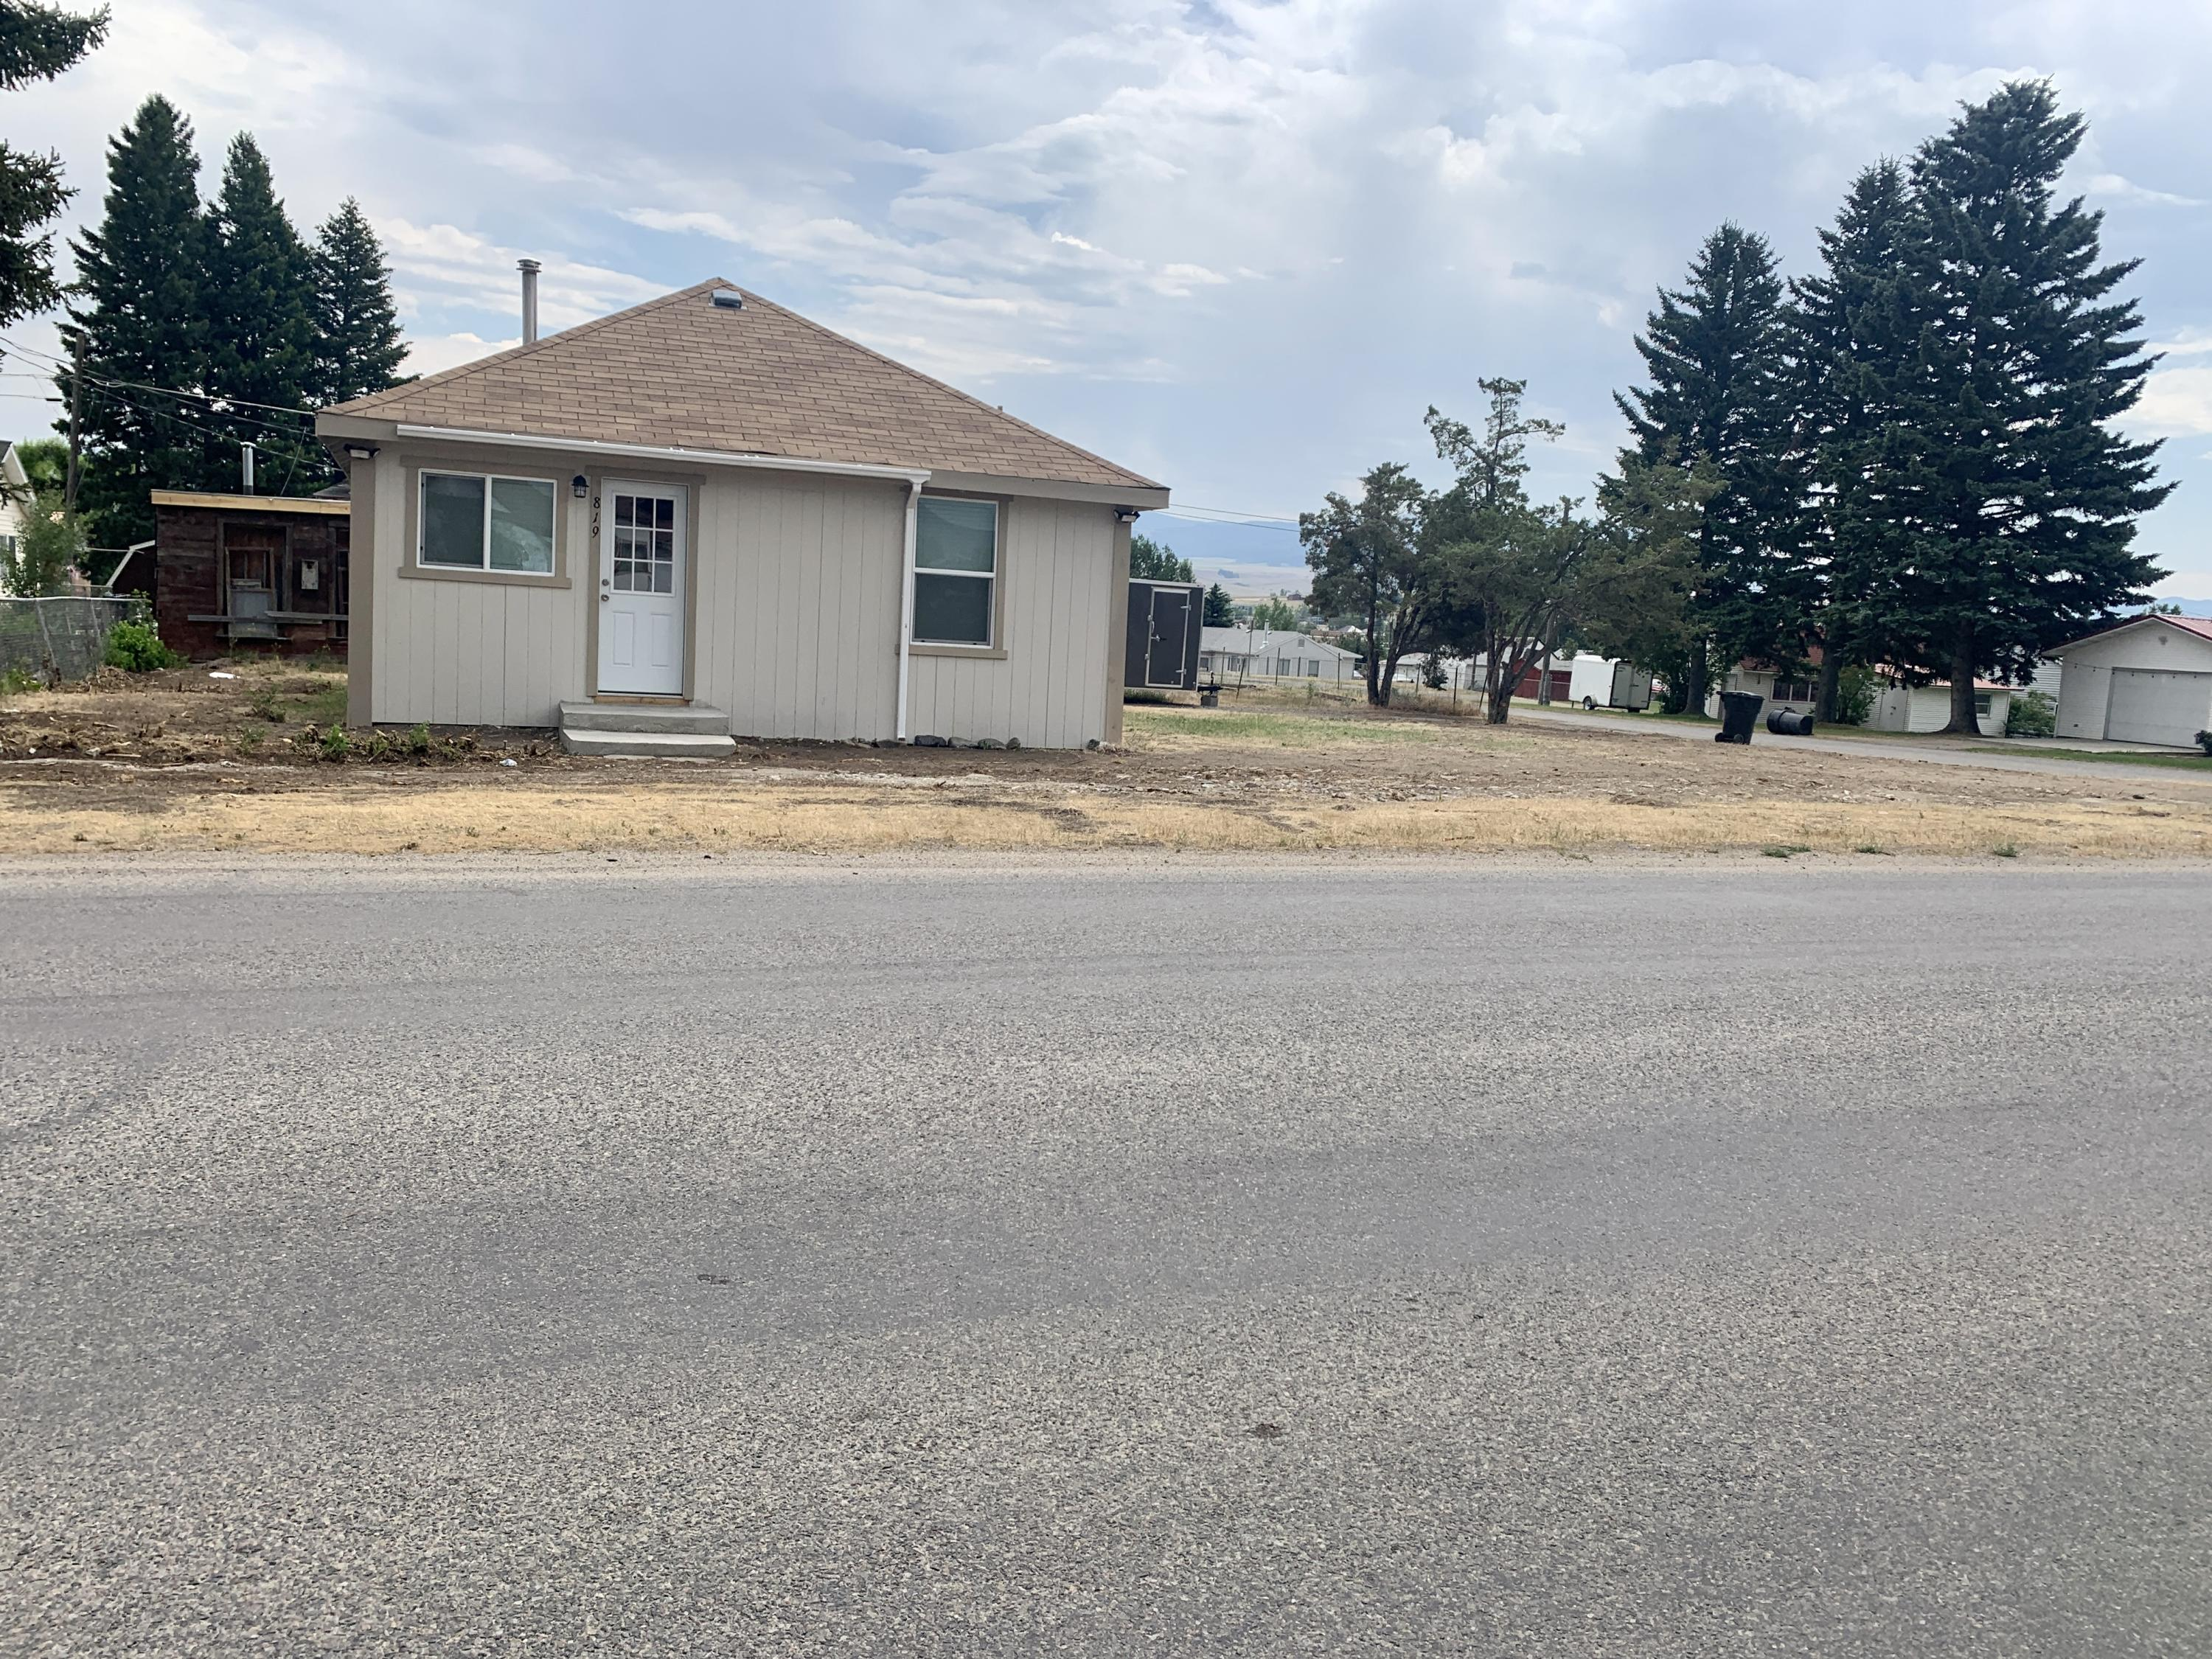 A wonderful newly updated home with 2 bedrooms and a full bath with a tiled shower. Luxury vinyl plank floors throughout the house with a spacious kitchen. Located on a corner lot.  Brand new water proofing on the siding. Come make this home yours! Call Tana Bignell at 406-949-3905 or your real estate professional.